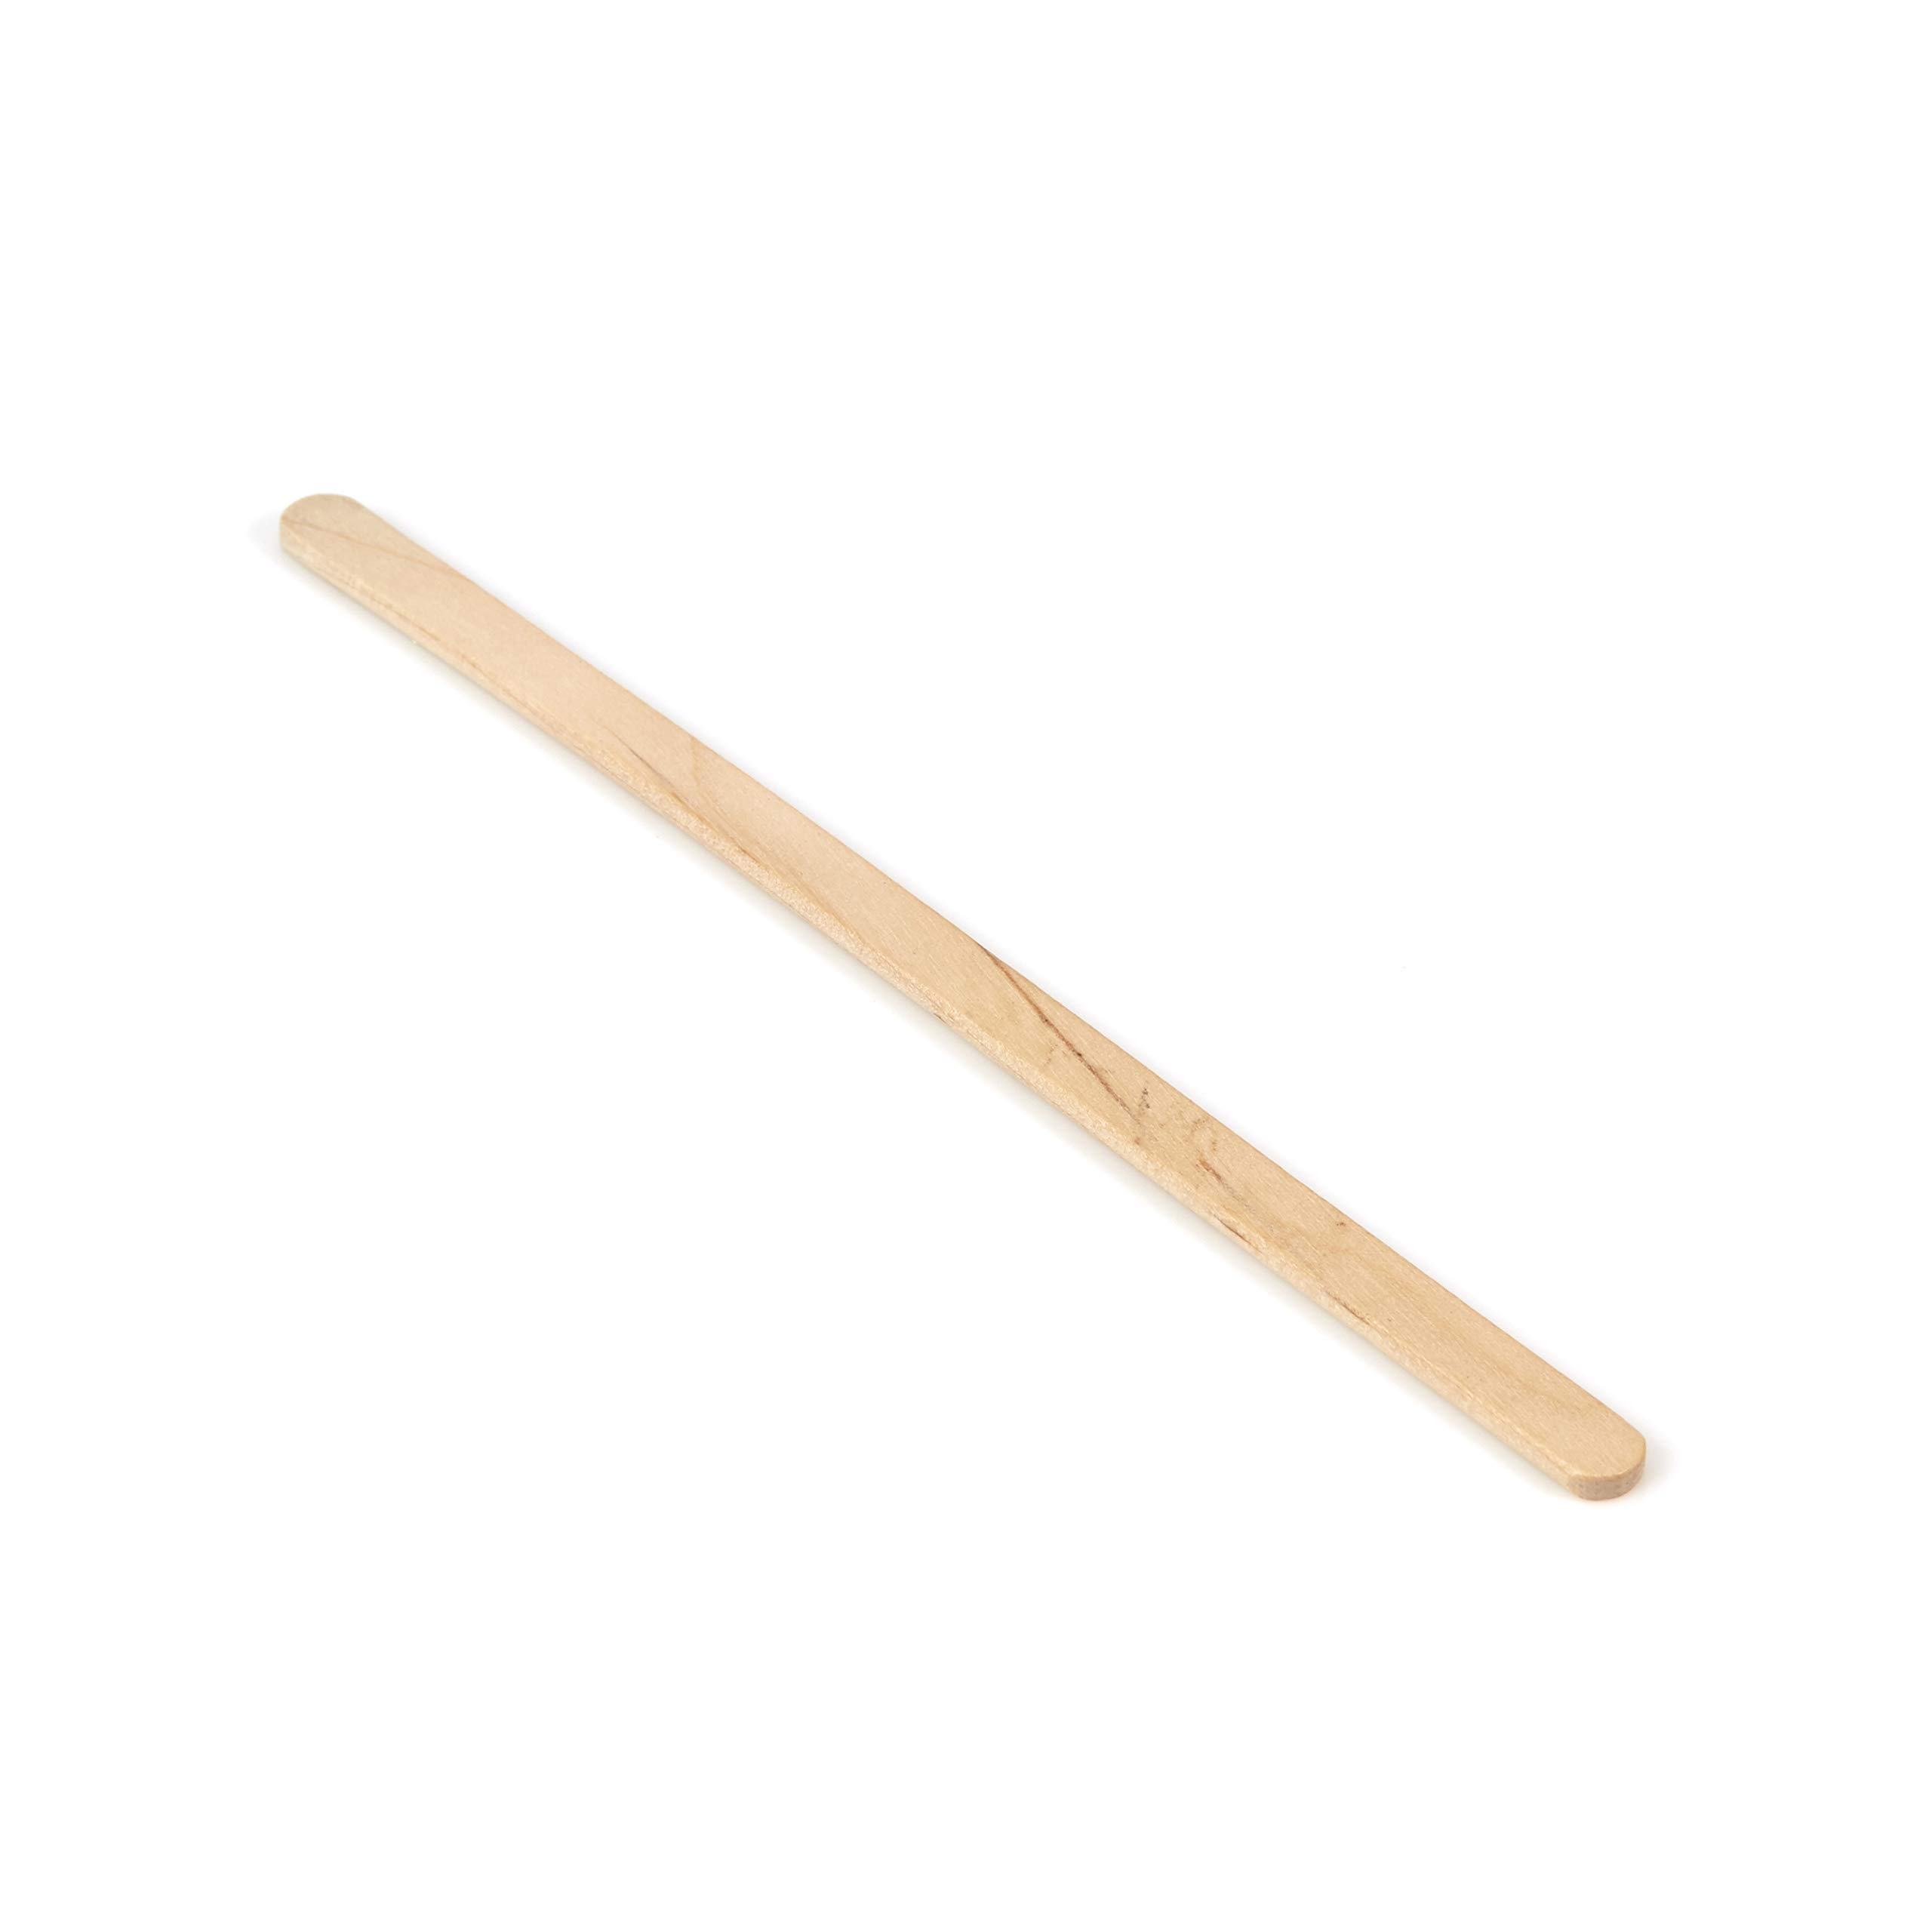 SmartPackUSA 5.5'' x 1/4'' inch Extra Thick Rounded end Wooden stirrers (1,000 Pack)